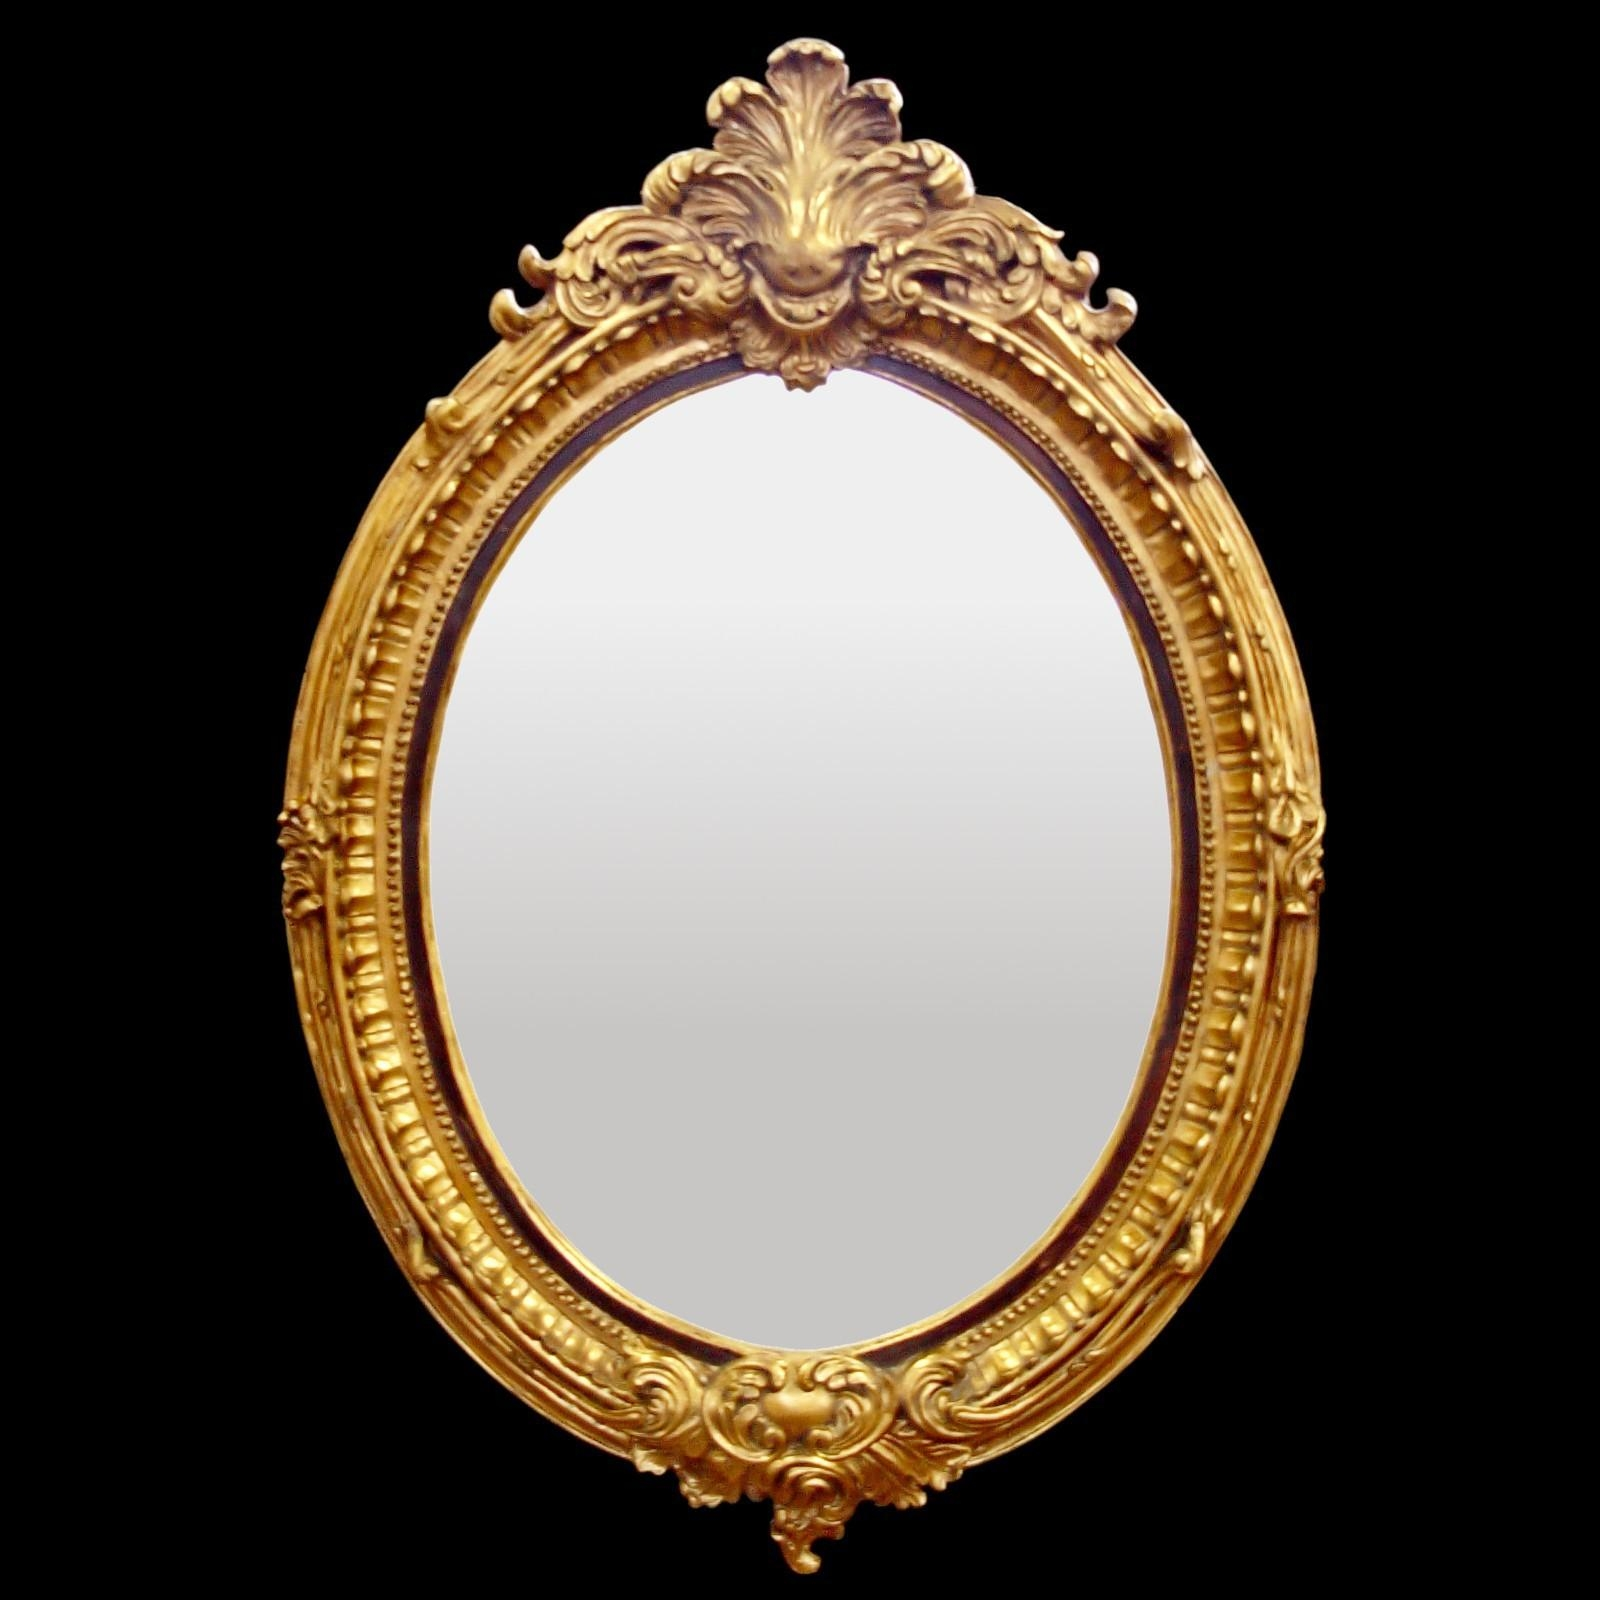 Baroque Hall Mirror Oval Wall Mirror Gold Color Red Leaf Motif Intended For Baroque Mirror Gold (Image 7 of 20)